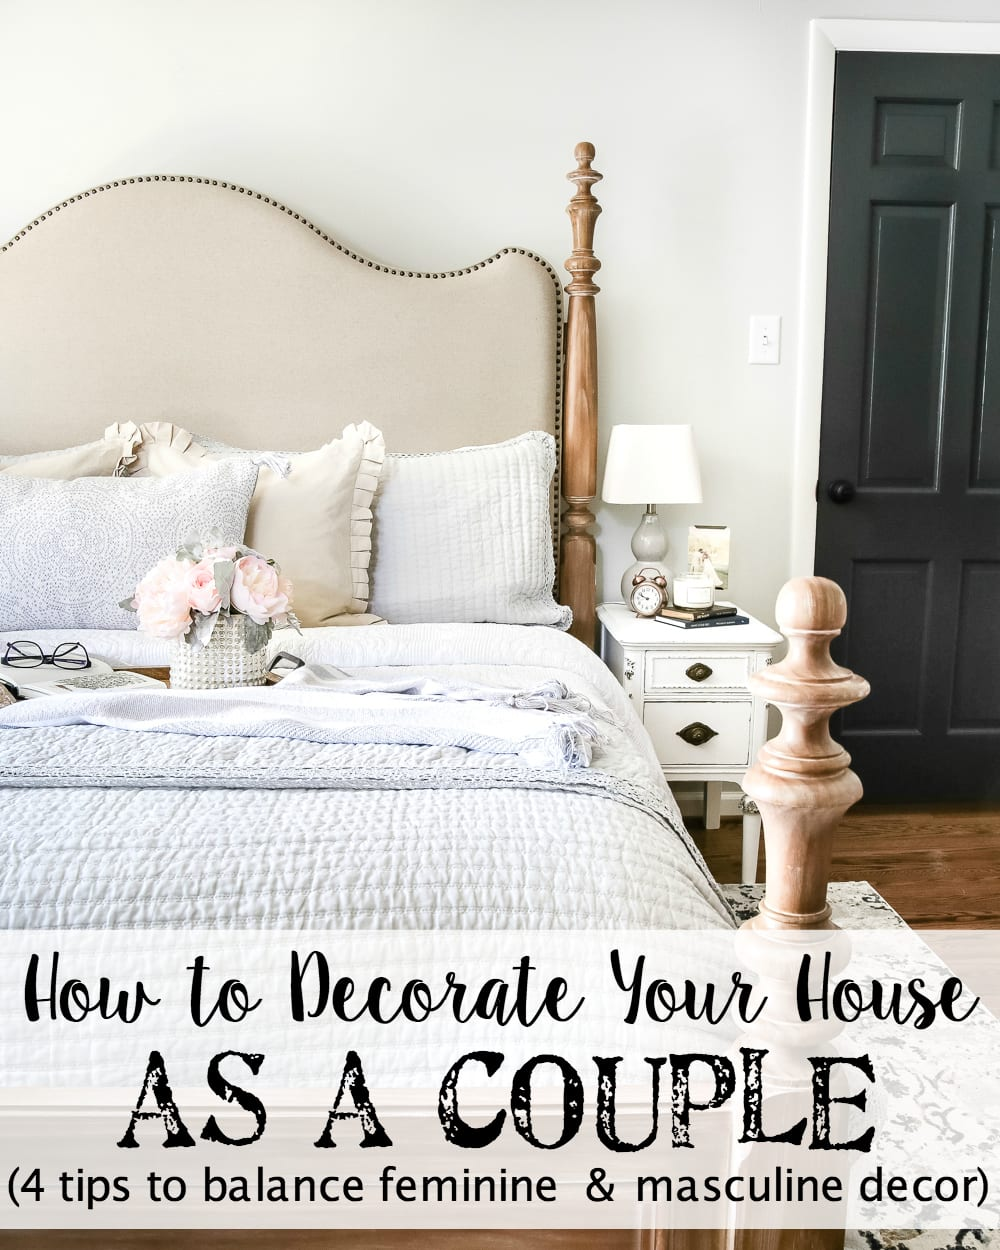 How to decorate your house as a couple bless 39 er house for Ideas to decorate your house